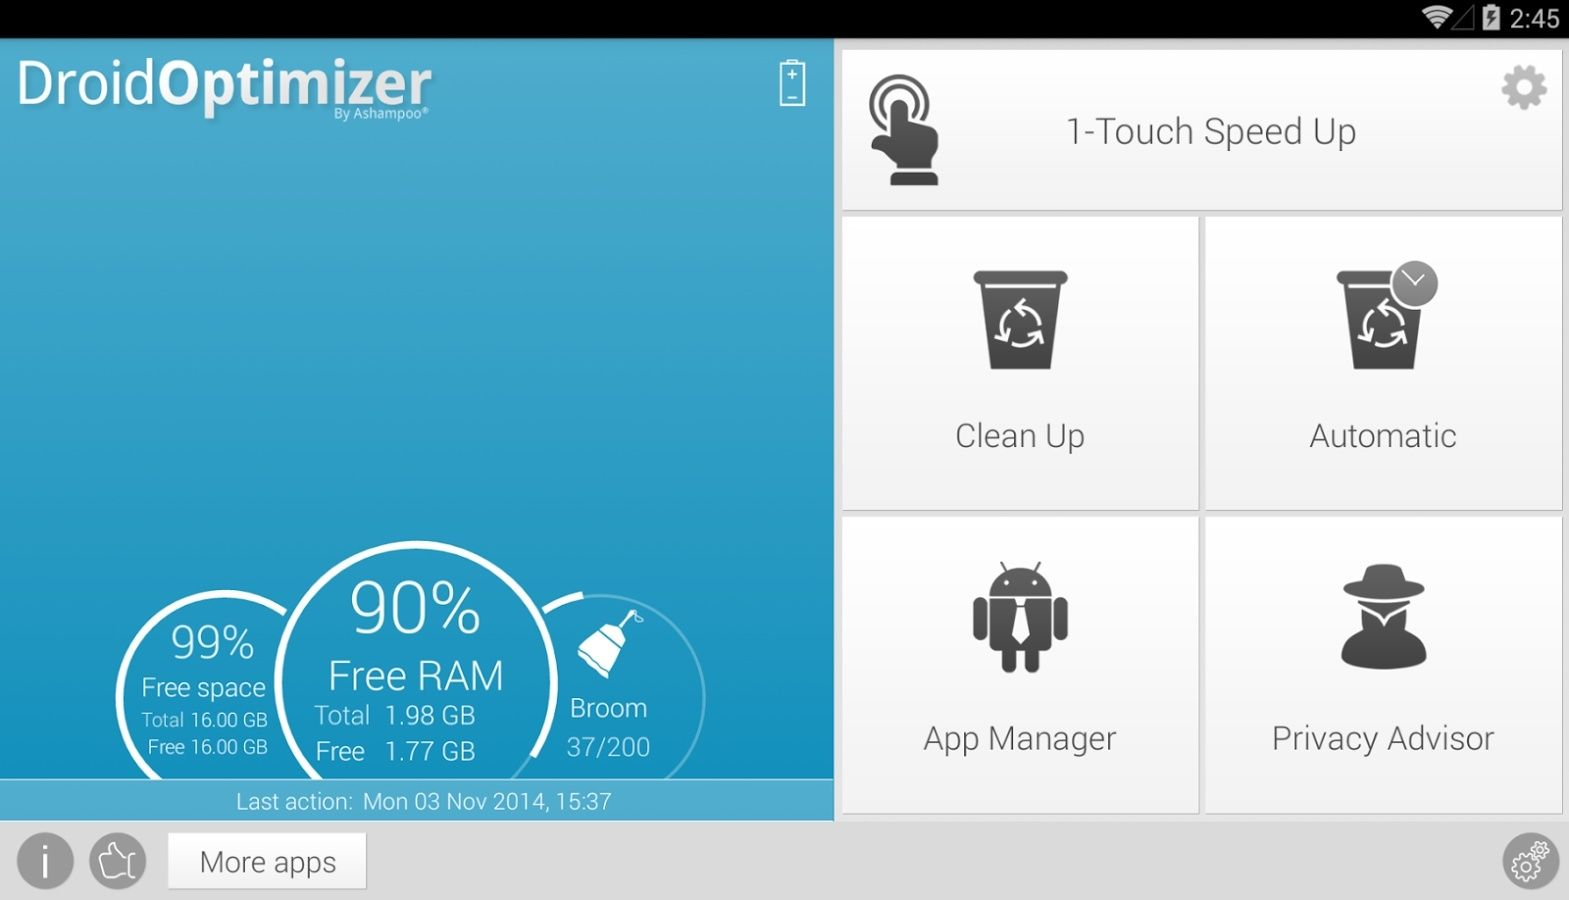 Android: Ashampoo Droid Optimizer 3.0.5 Unname20